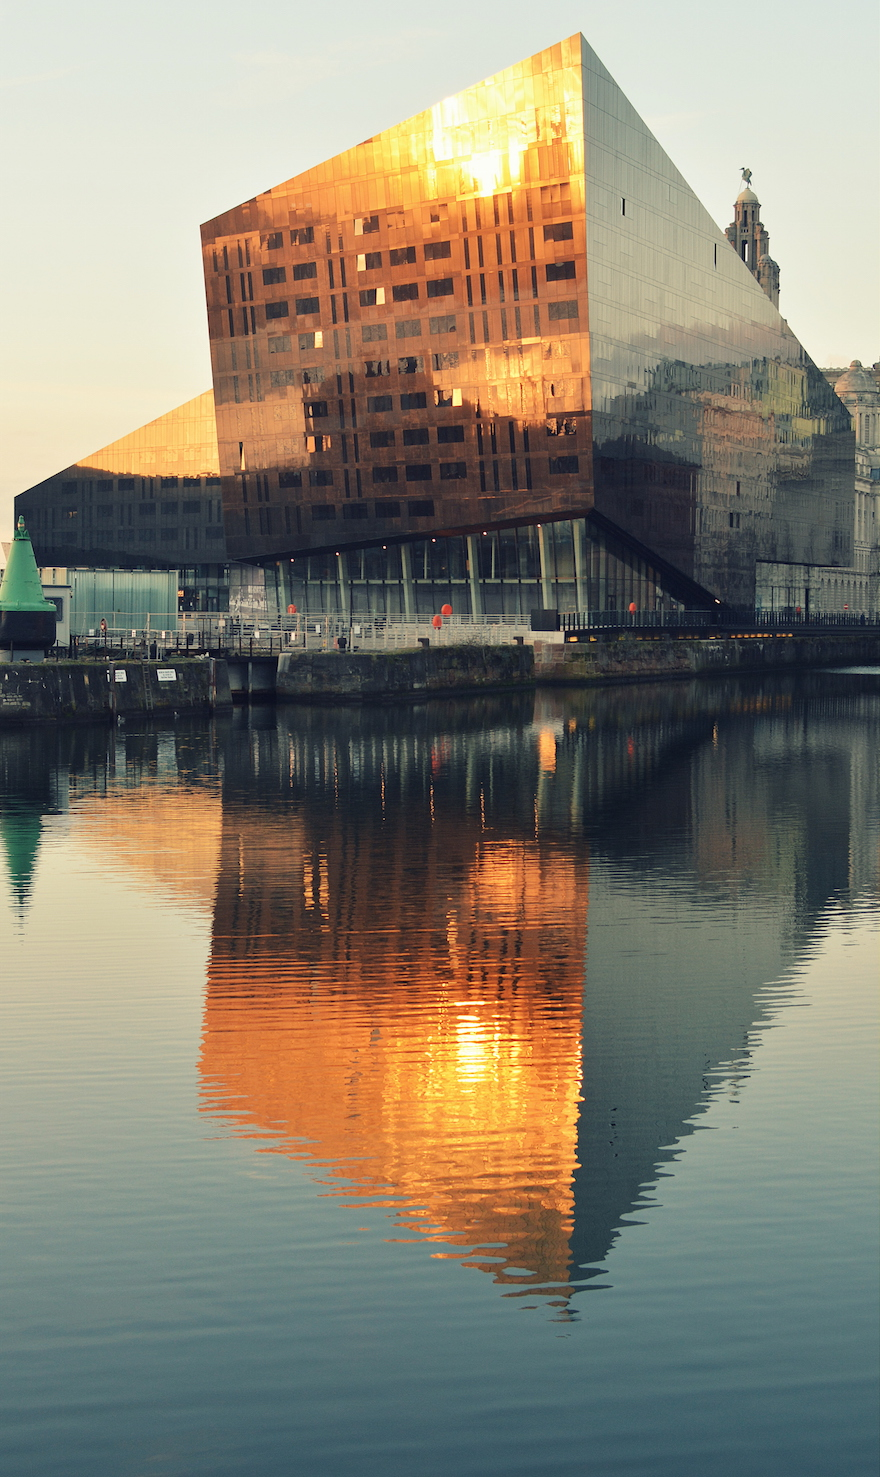 Canning dock – Architecture